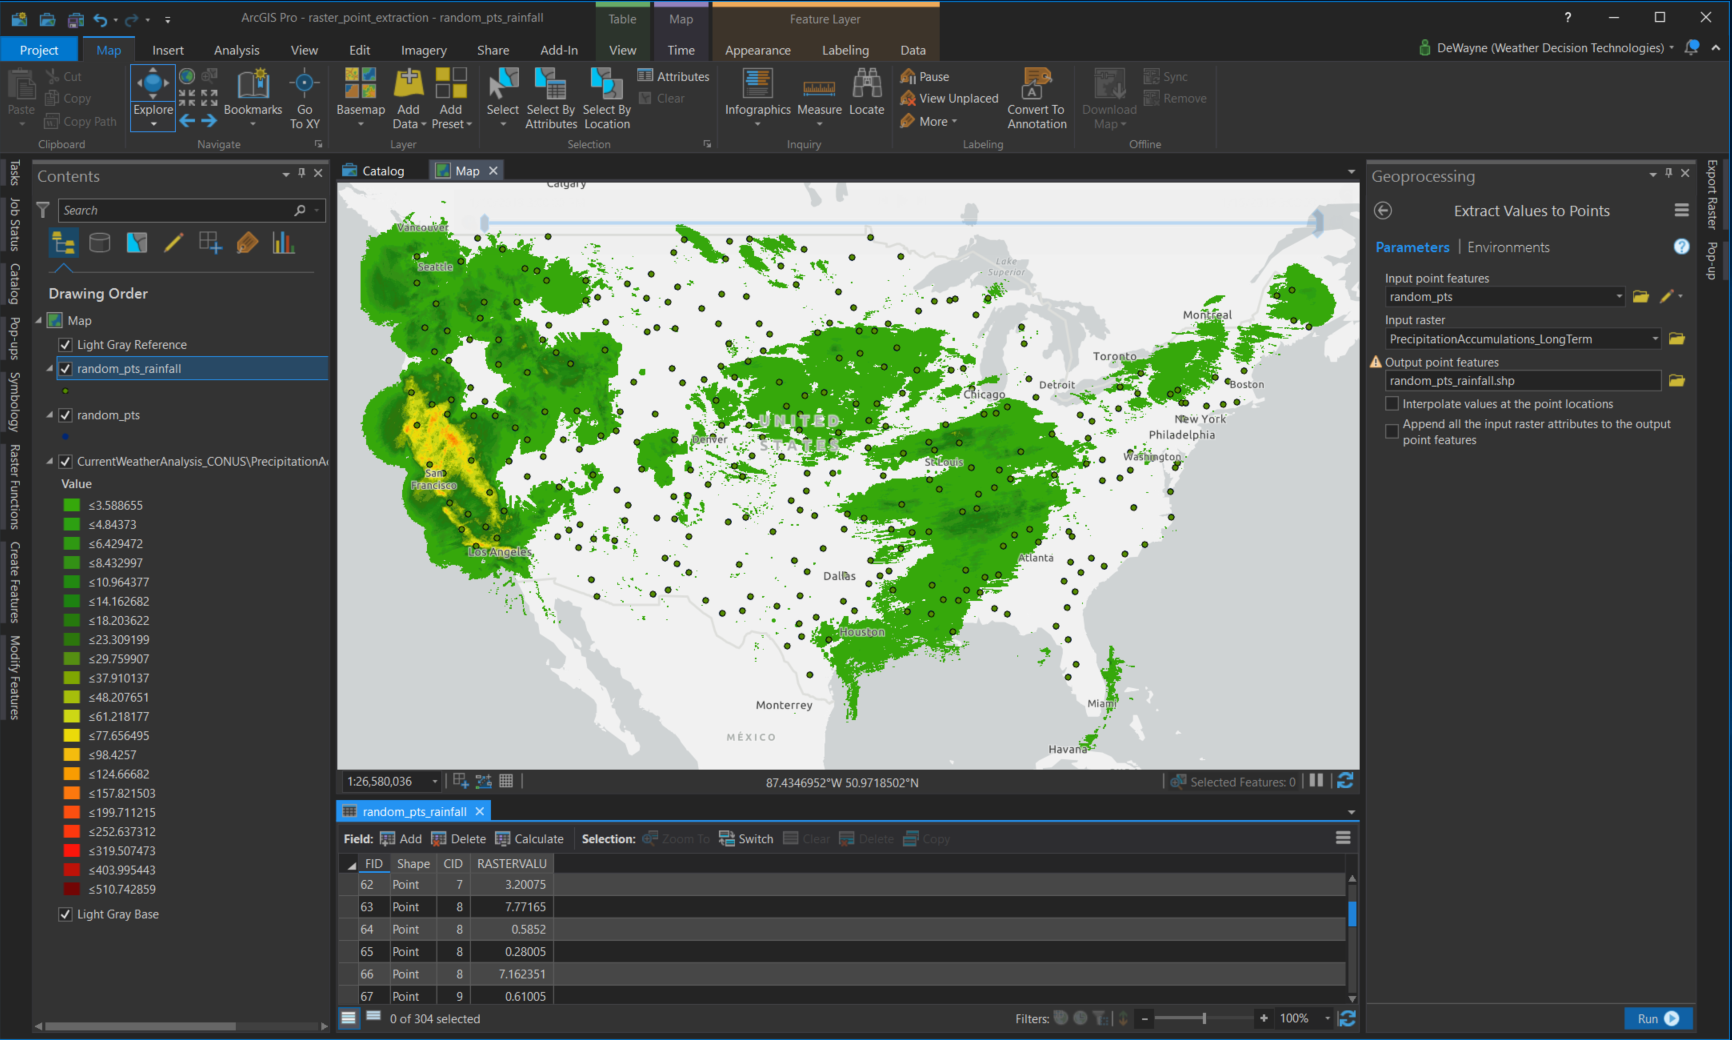 Extracting Point Data From Image Services in ArcGIS Pro